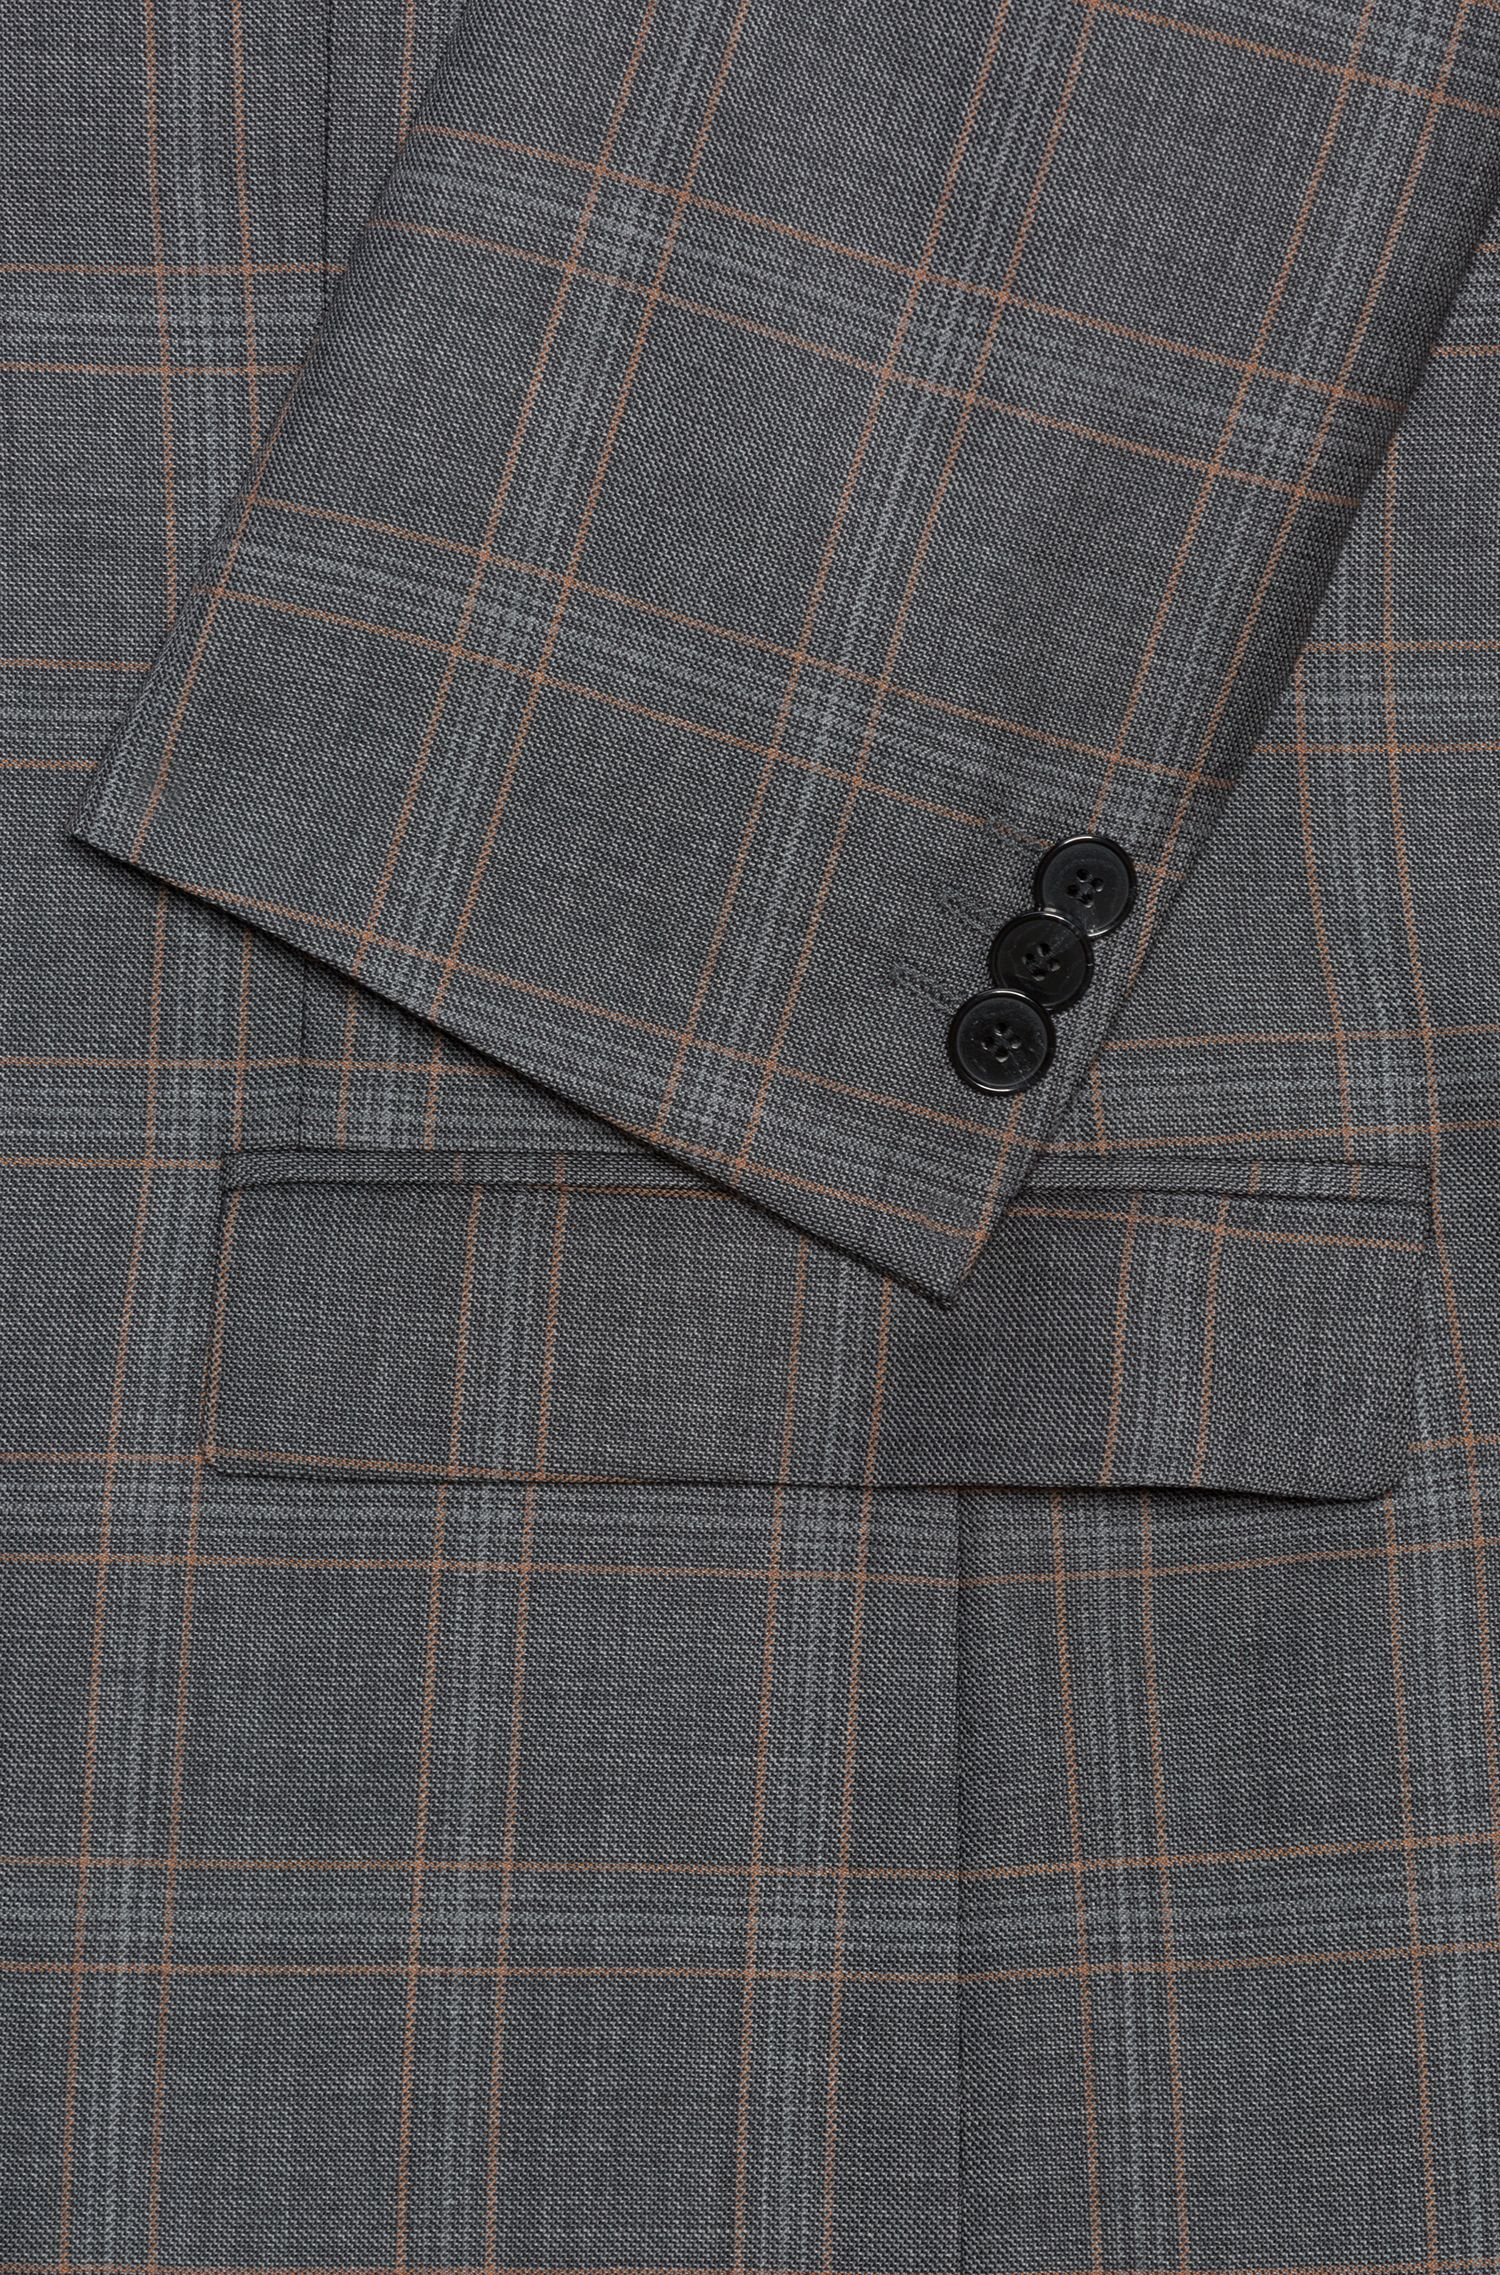 Extra-slim-fit virgin-wool suit in check pattern